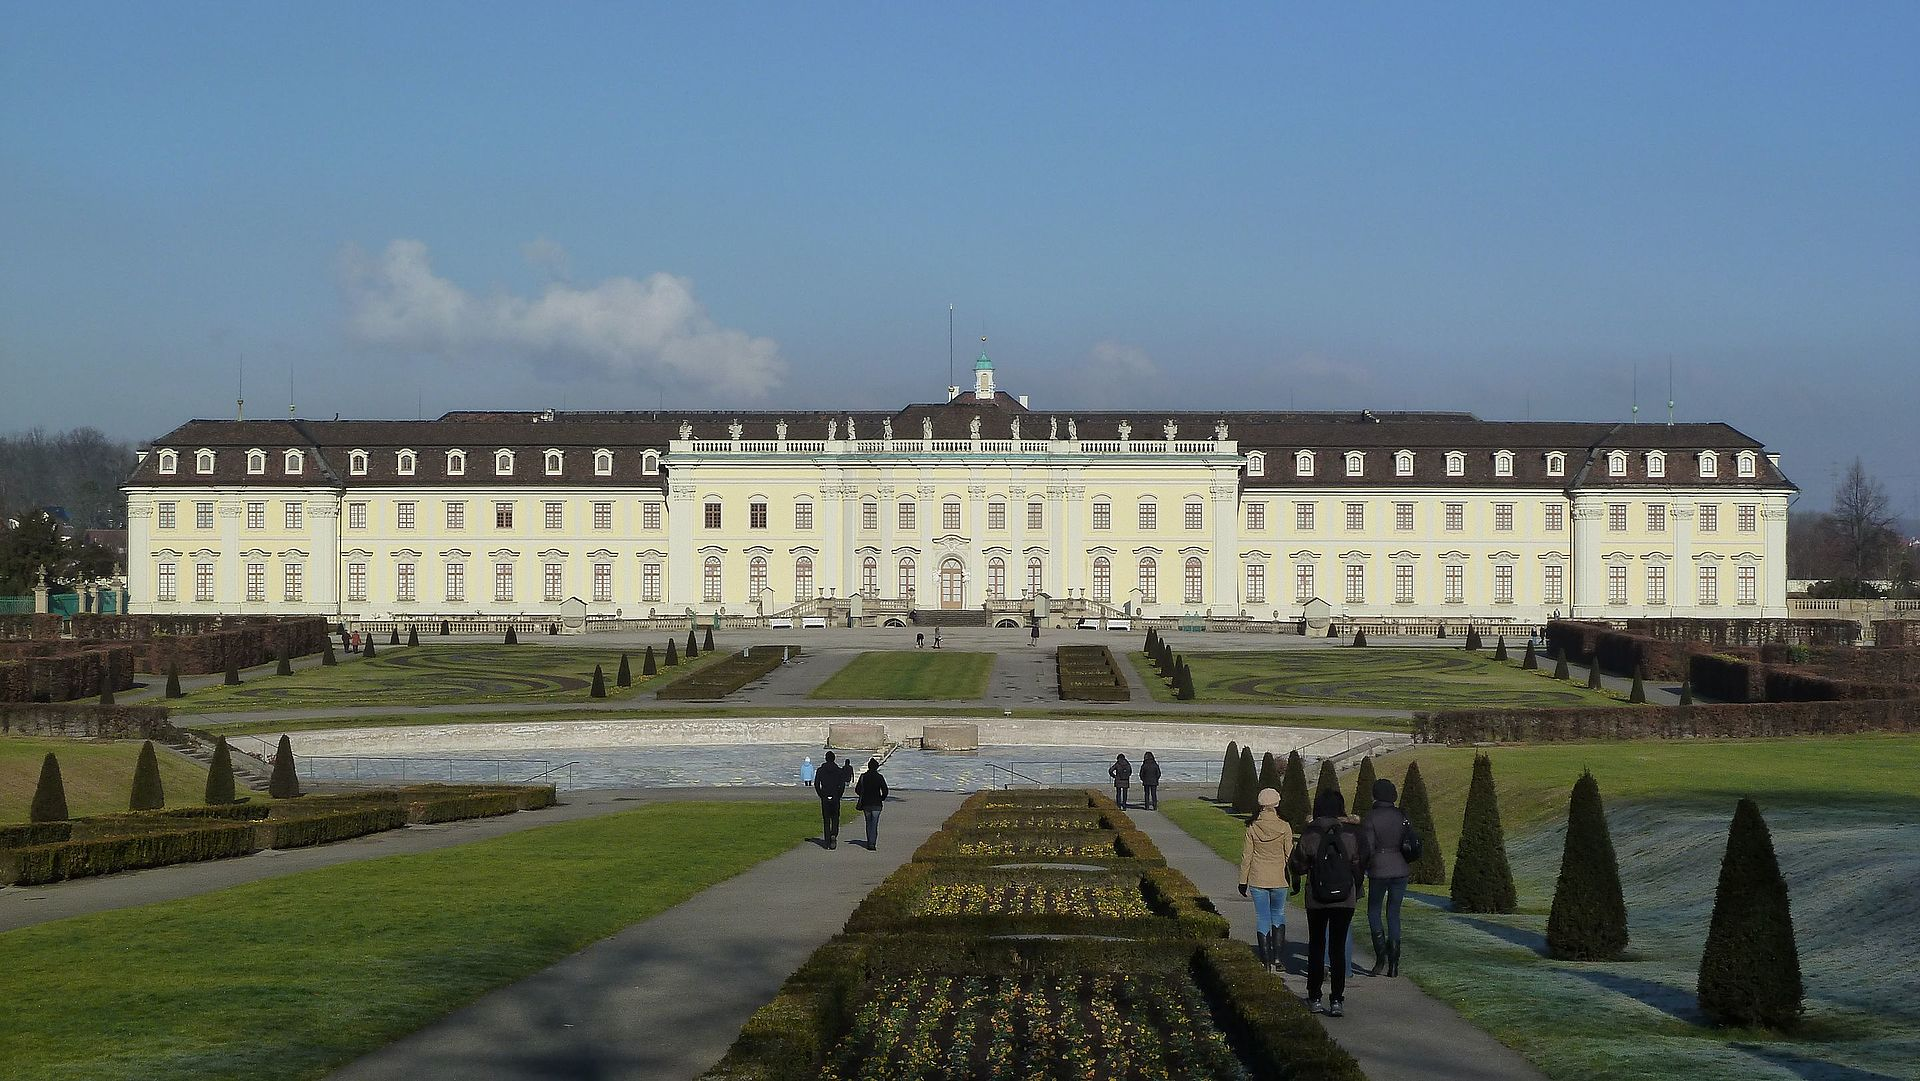 keramik in der region stuttgart. Black Bedroom Furniture Sets. Home Design Ideas